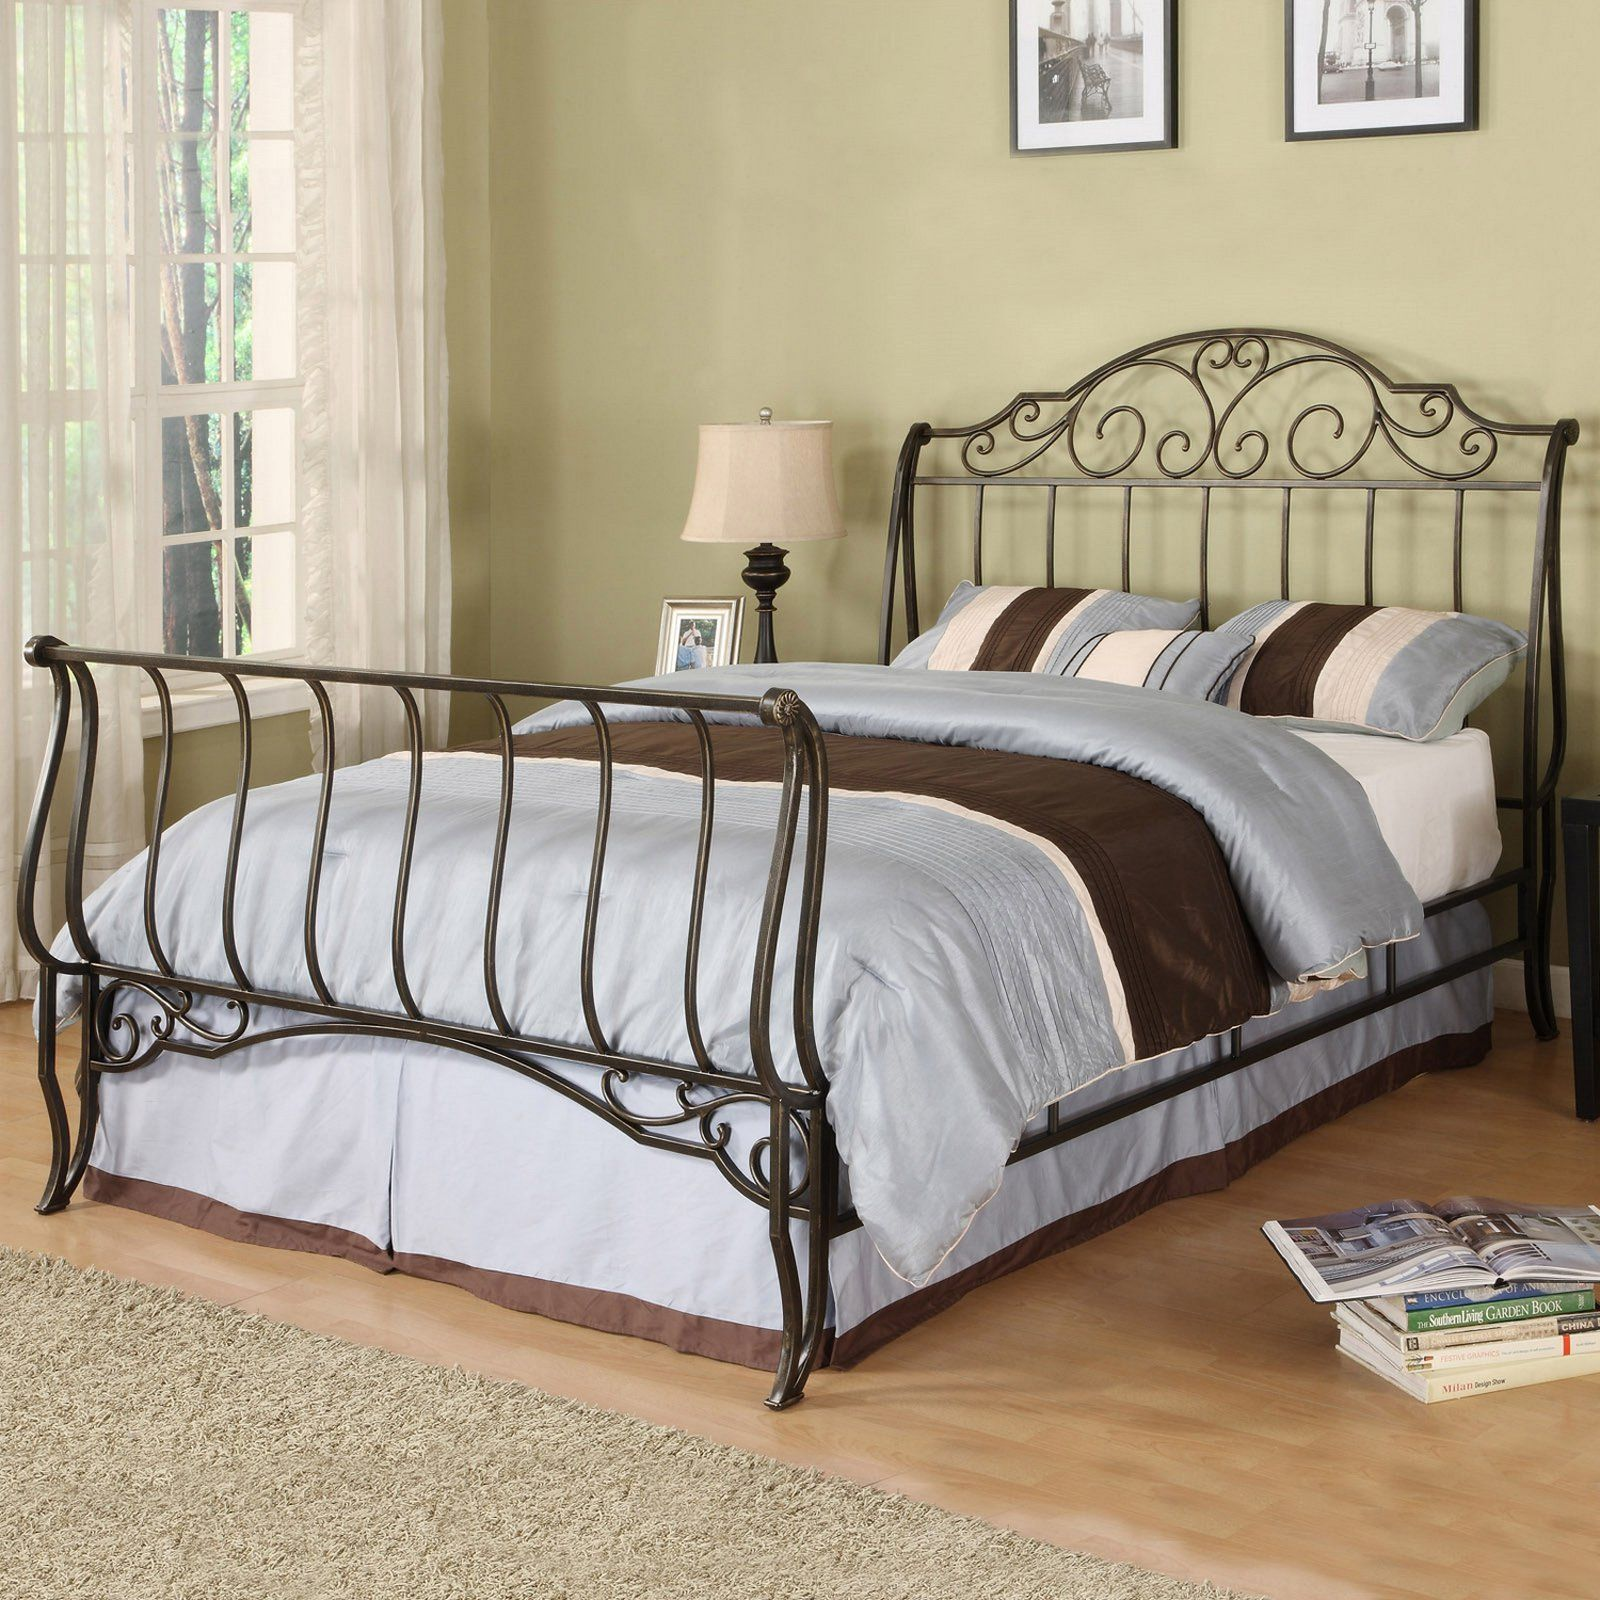 king bed frames wood and scroll | Dunhill Wood and Iron Bed by ...